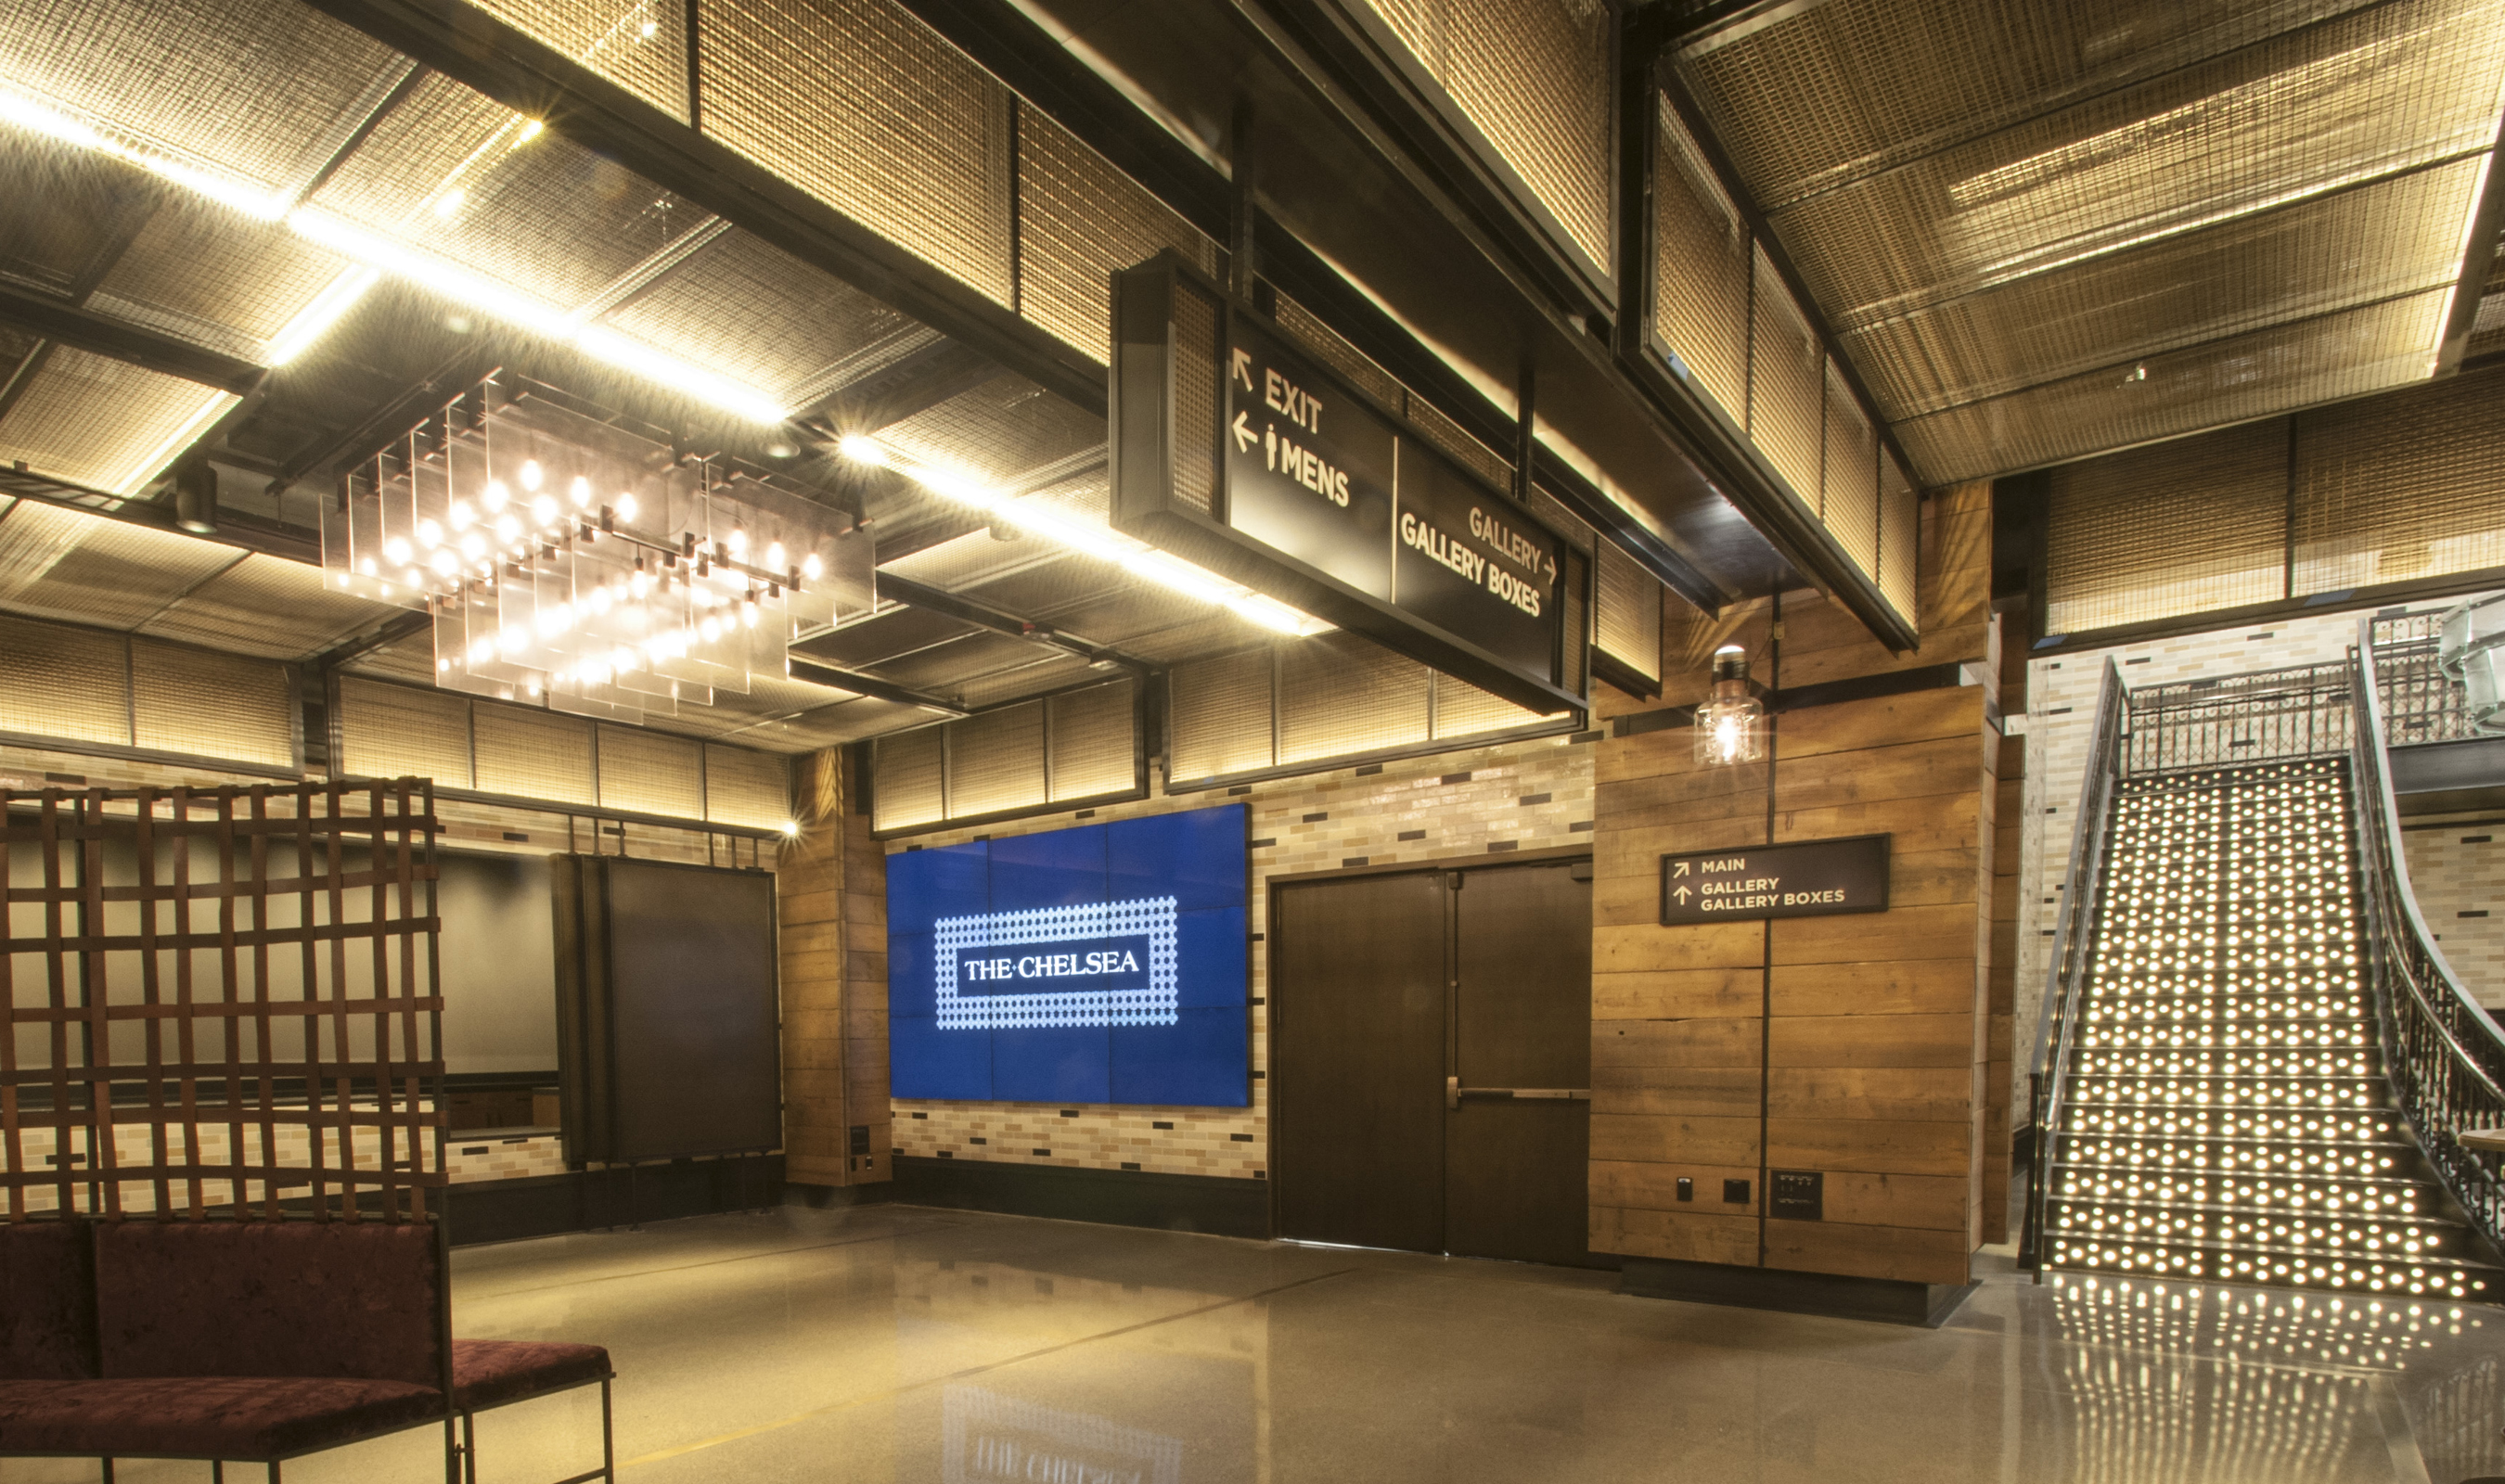 Banker Wire M22-28 and L-81 woven wire mesh patterns were used as a custom ceiling and wall panel design located throughout the lounge and theater spaces.